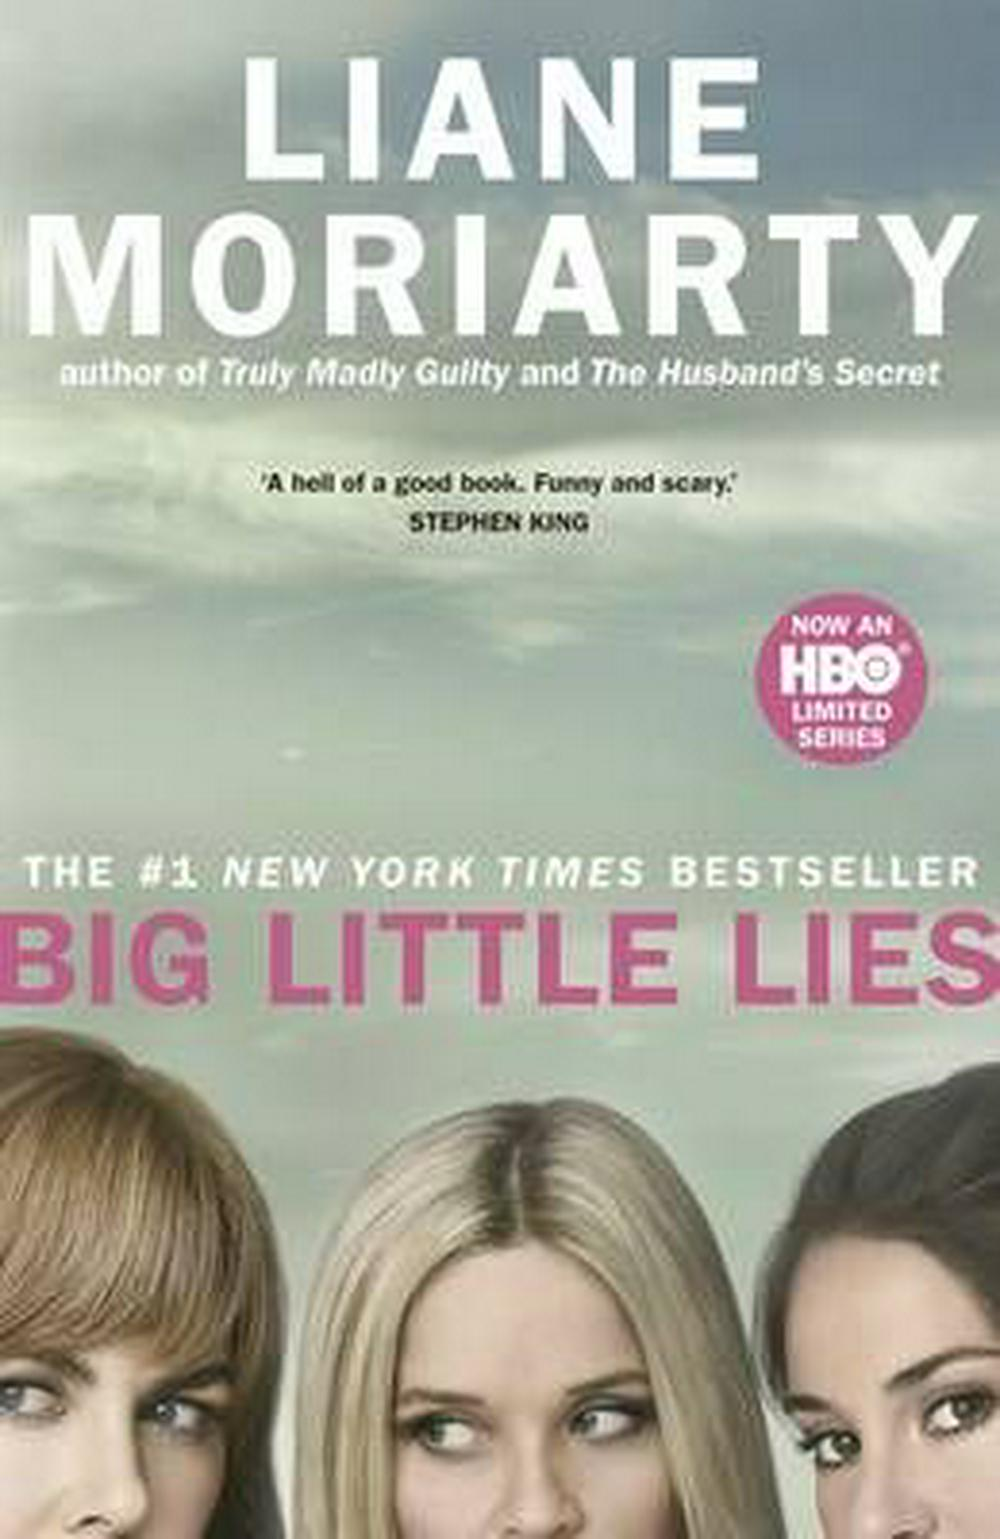 Big Little Lies by Liane Moriarty, ISBN: 9781760552596